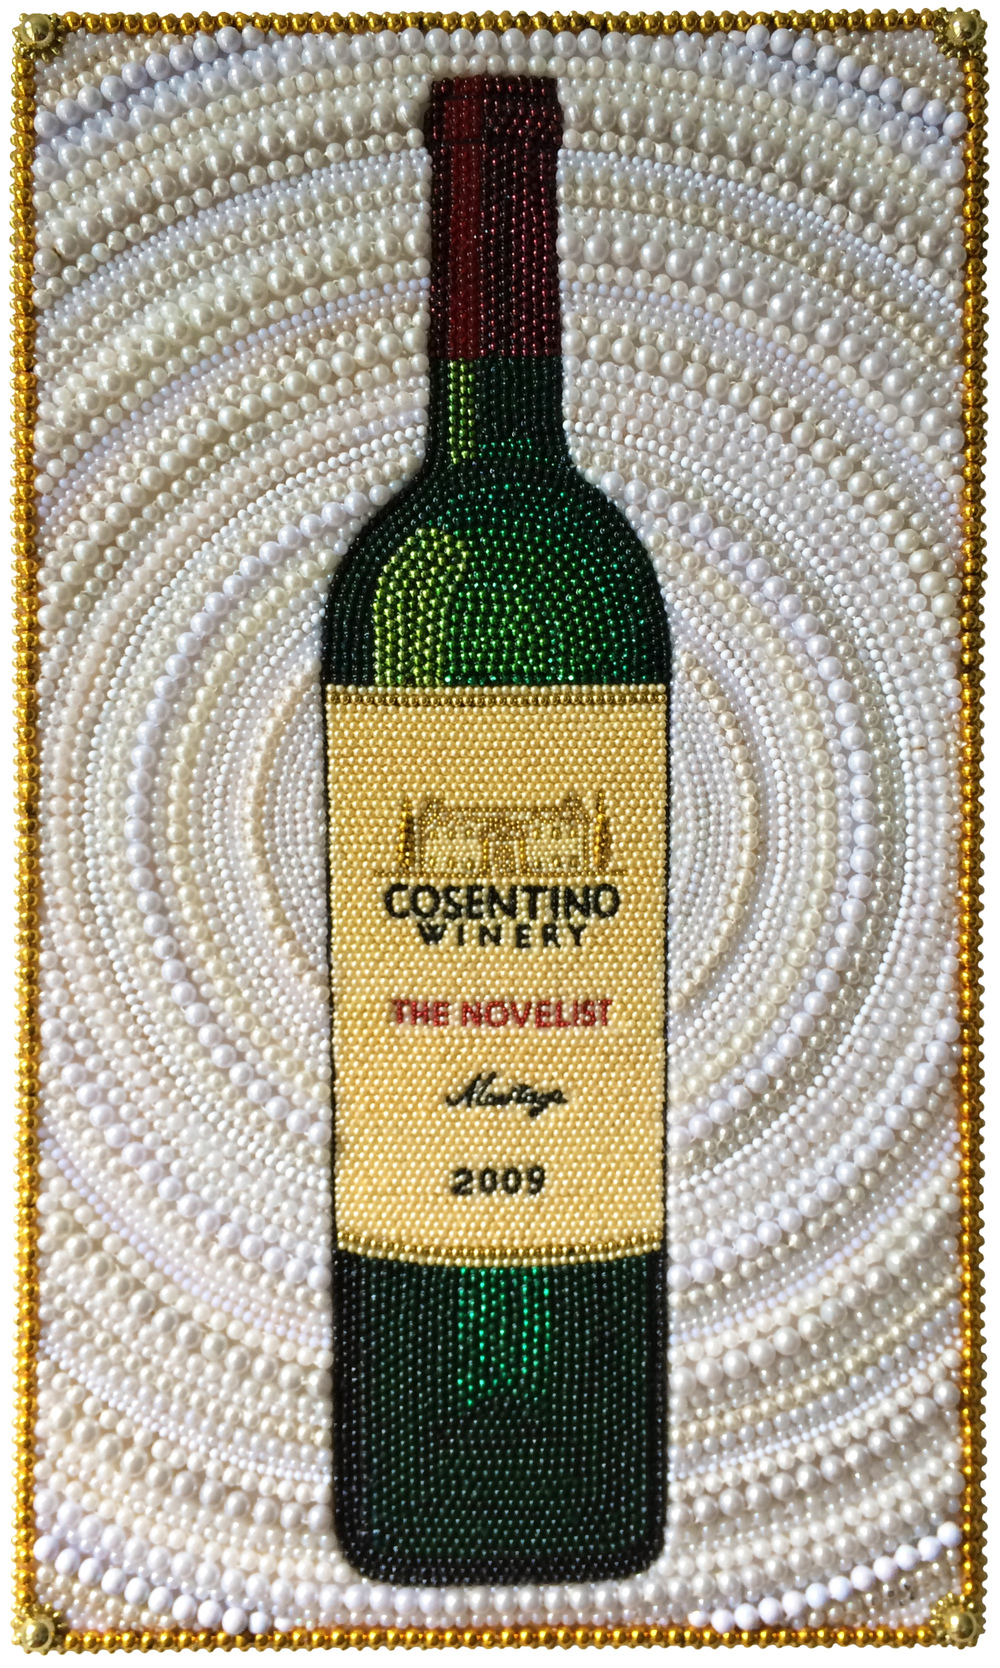 cosentino wine bottle